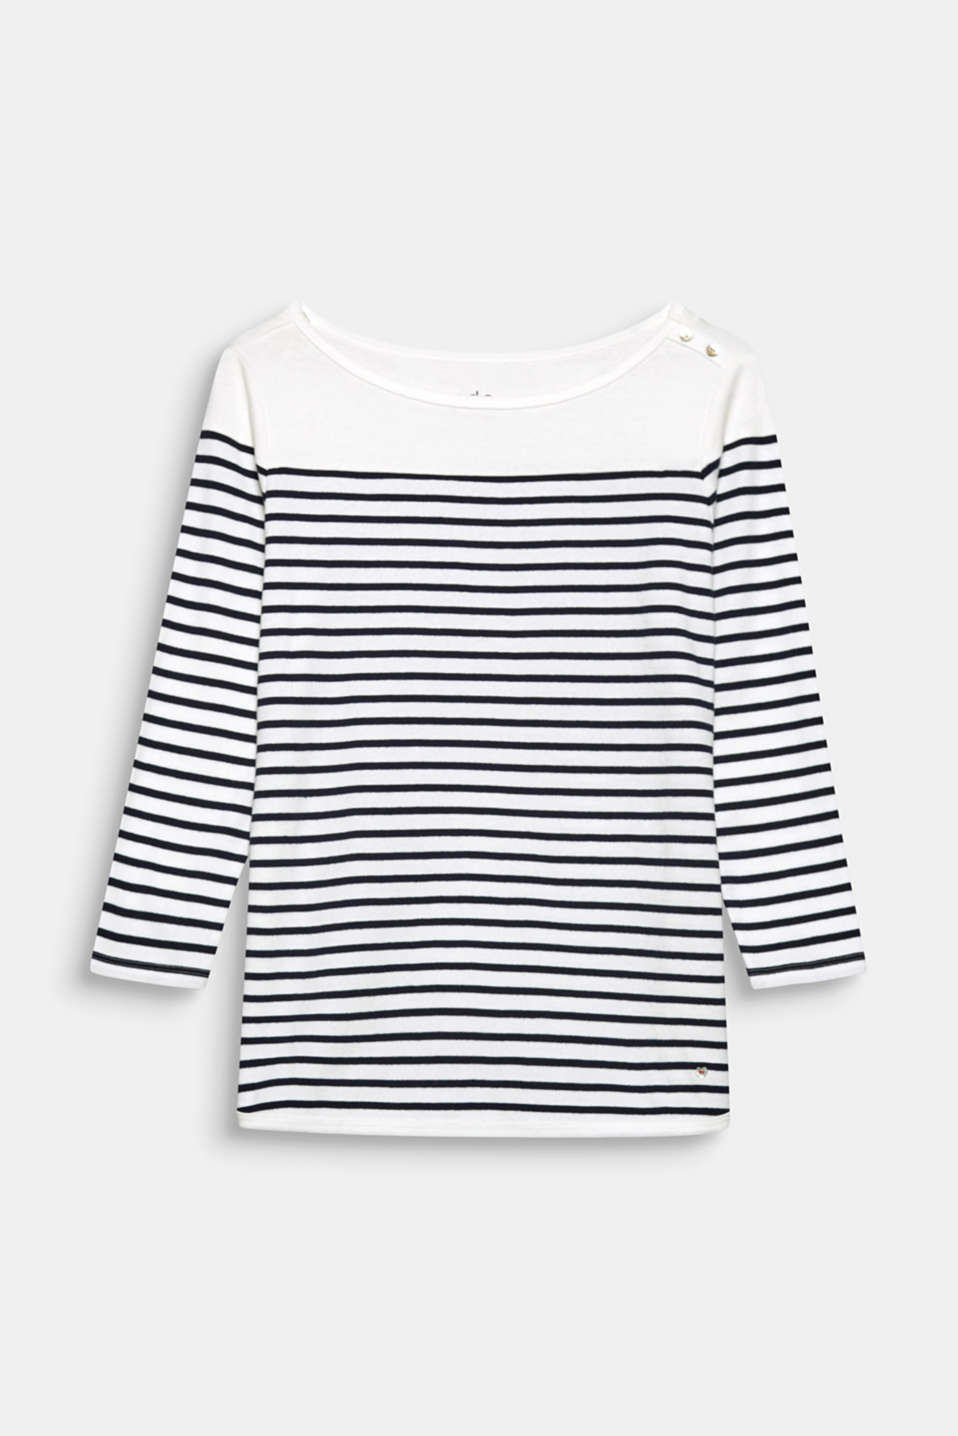 This finely ribbed cotton tee patterned with Breton stripes has a fantastic nautical vibe.